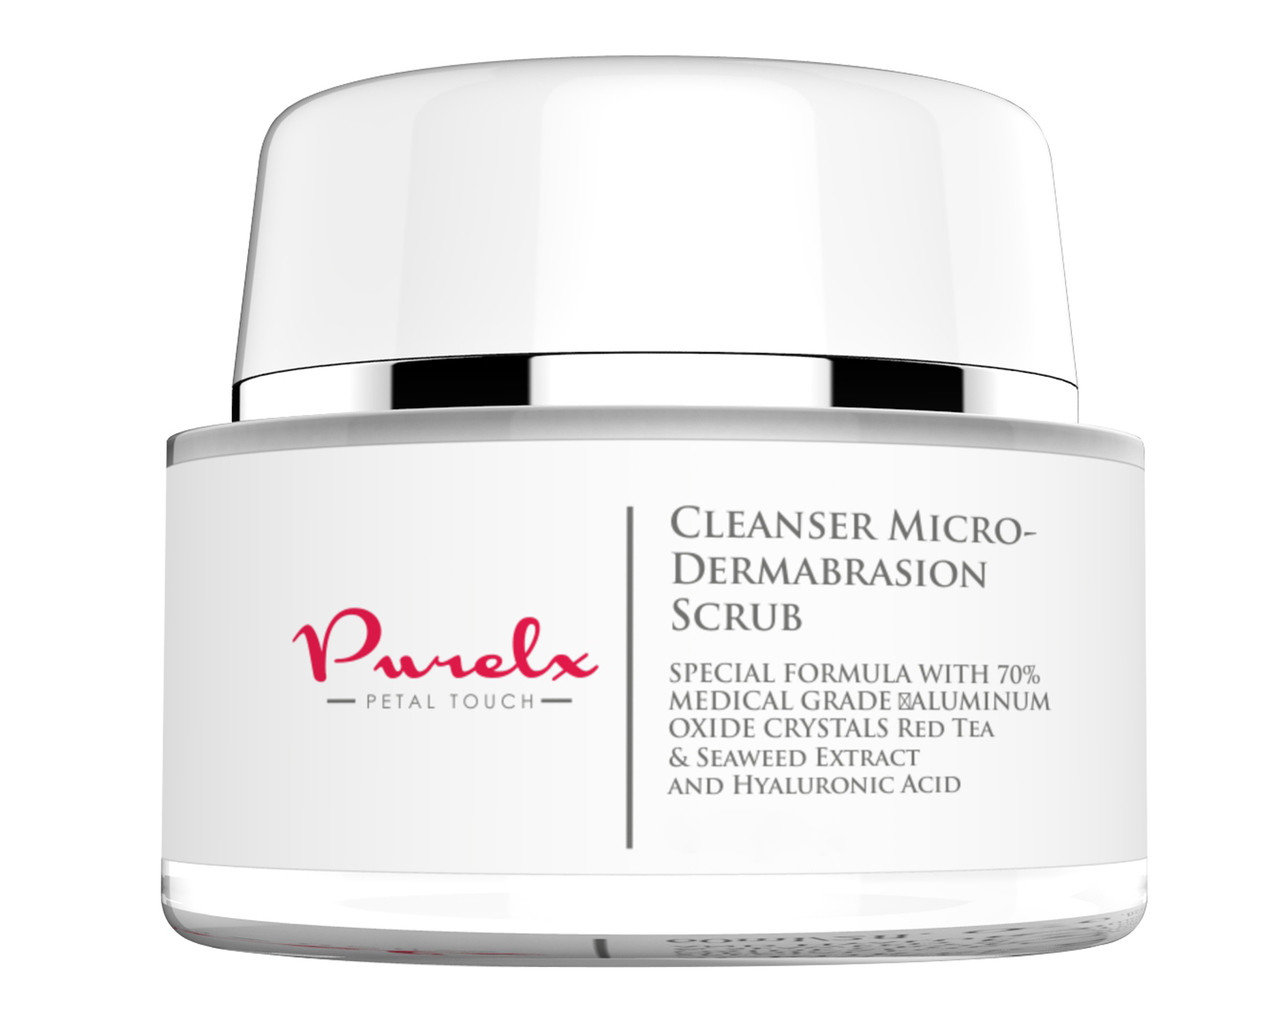 Perfection Cleanser Micro-Dermabrasion Scrub